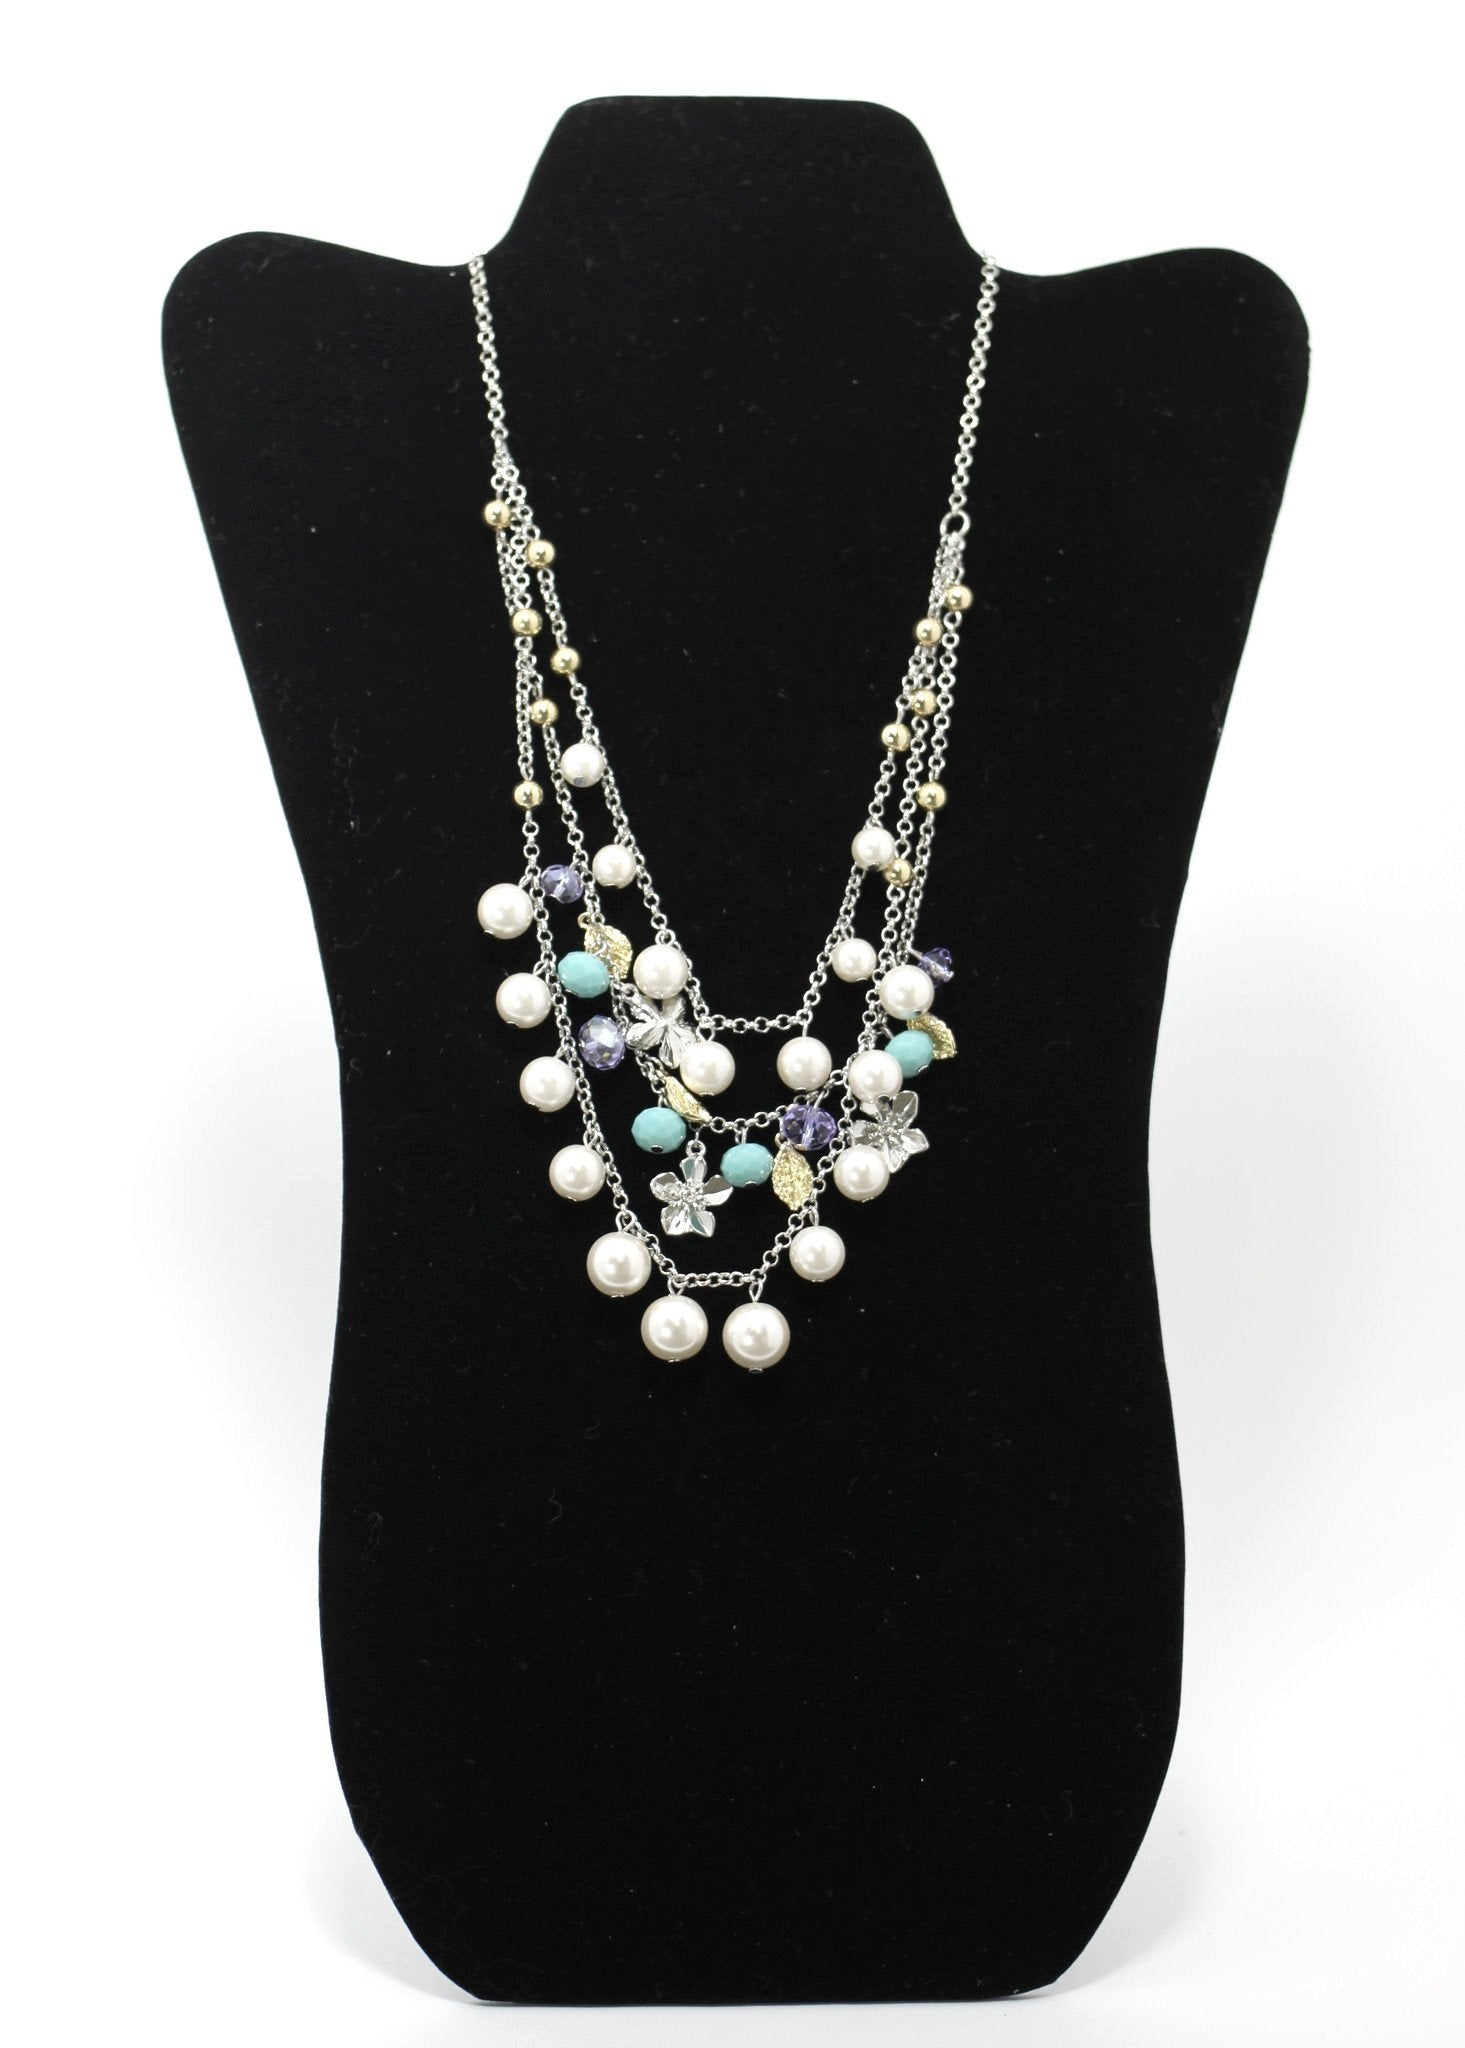 Colorful Beaded Pearl Necklace - The Fashion Foundation